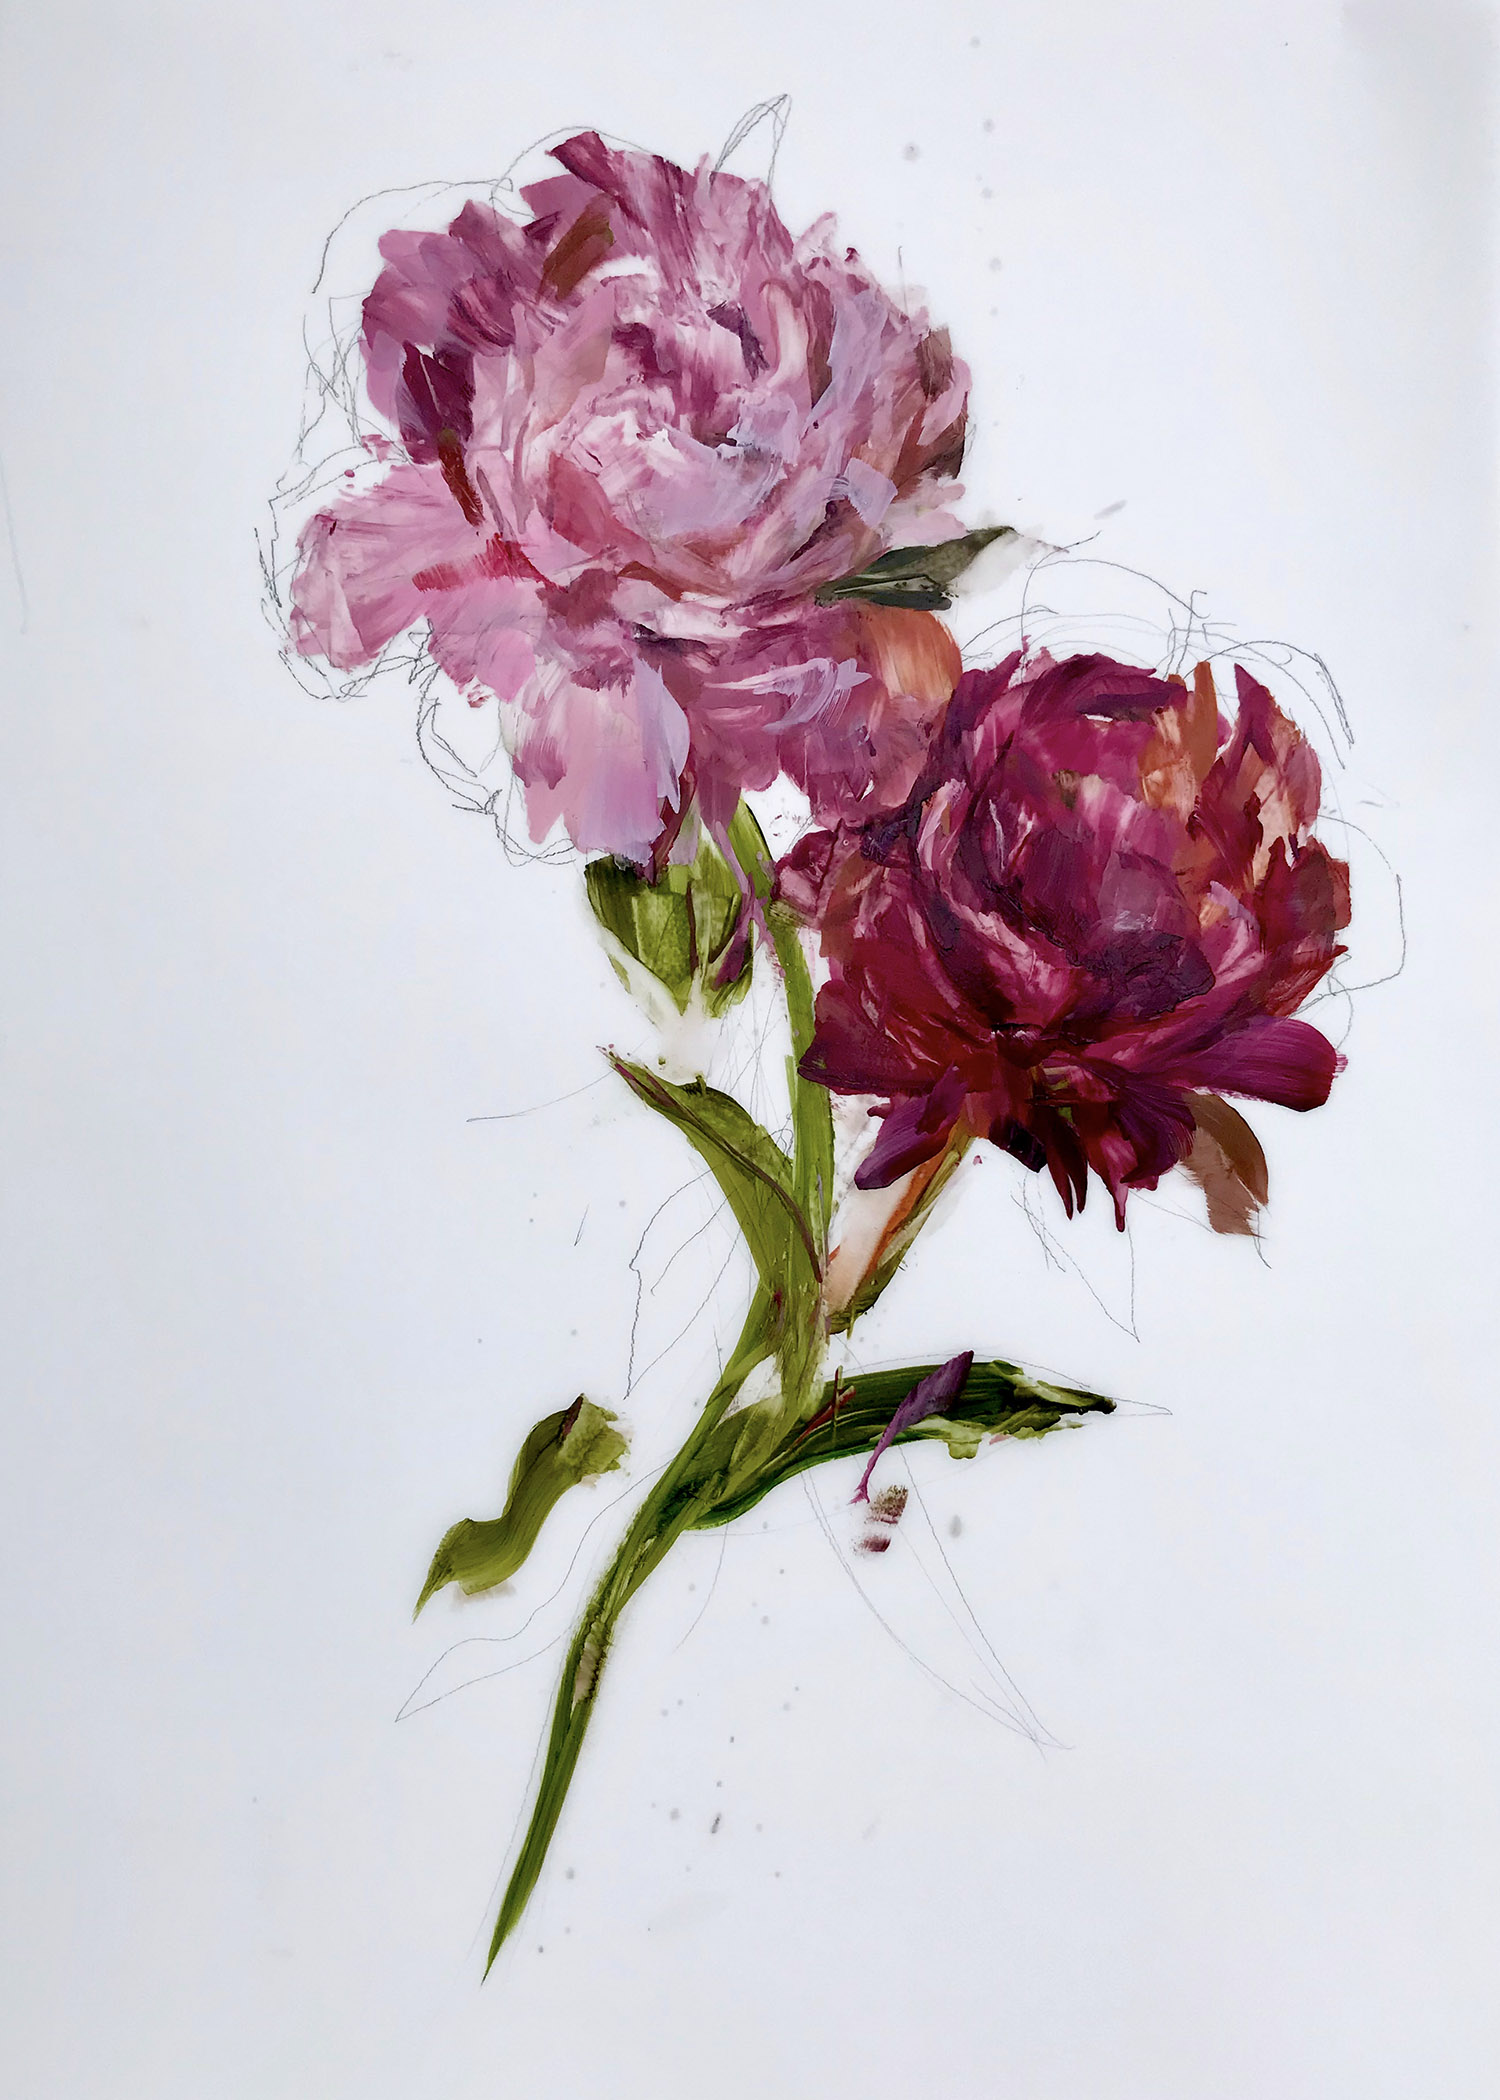 Madeleine Lamont, Effloresce 6, oil on mylar, 36 x 24 in.